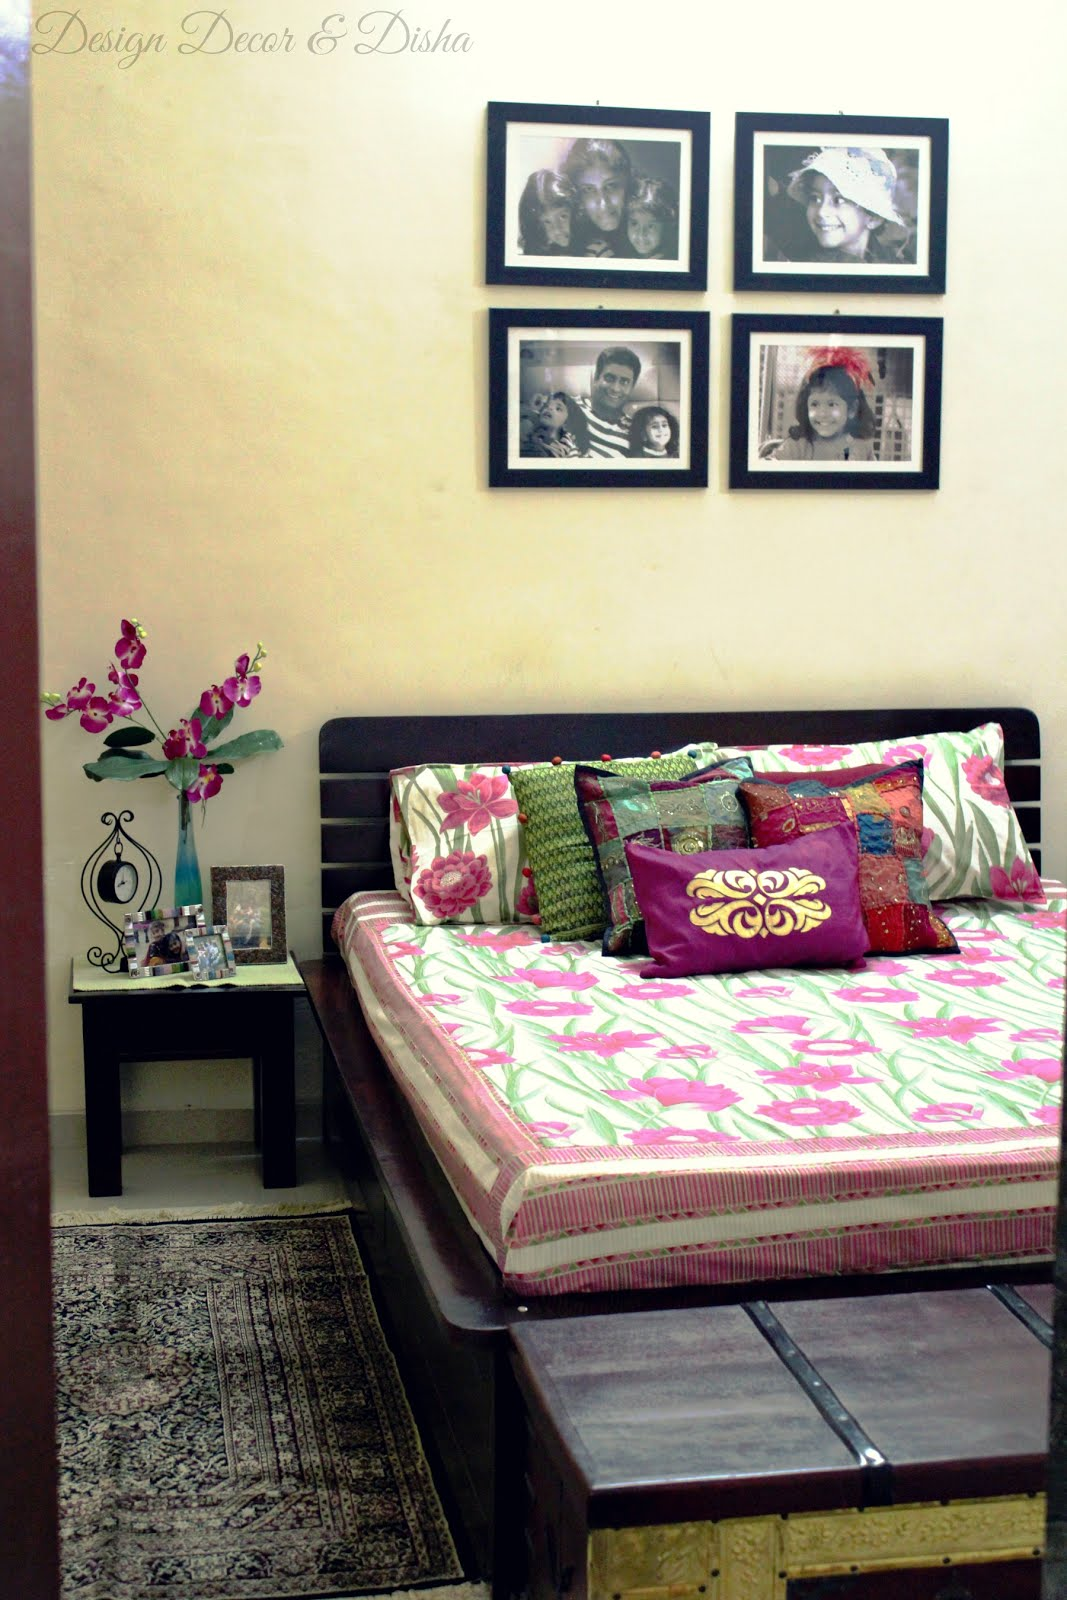 Design decor disha an indian design decor blog home tour kapila banerjee - Image for bed room ...